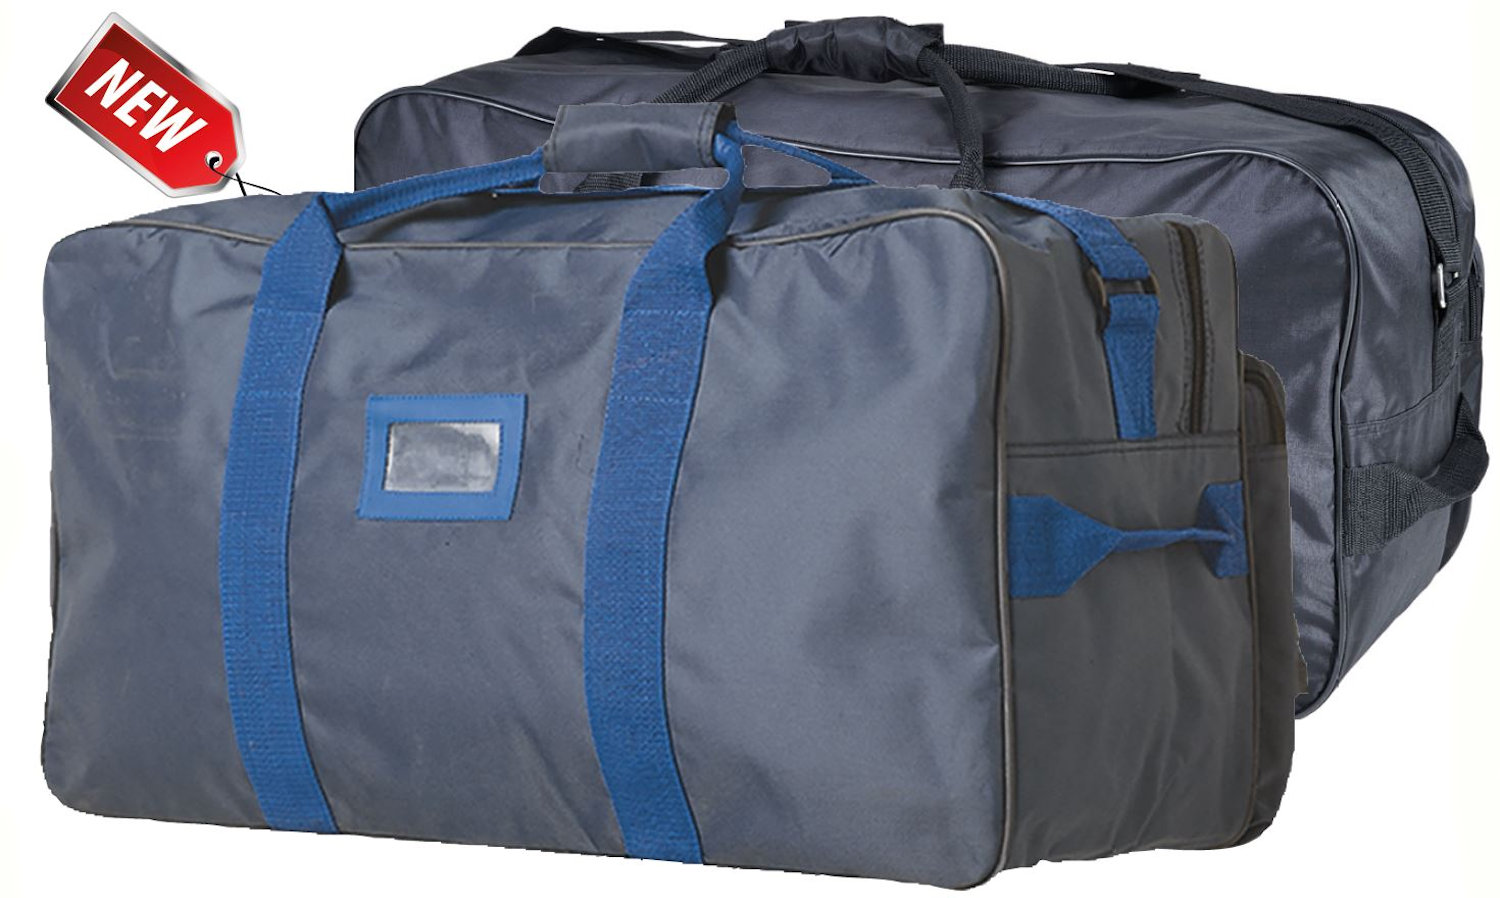 Portwest B900 bag